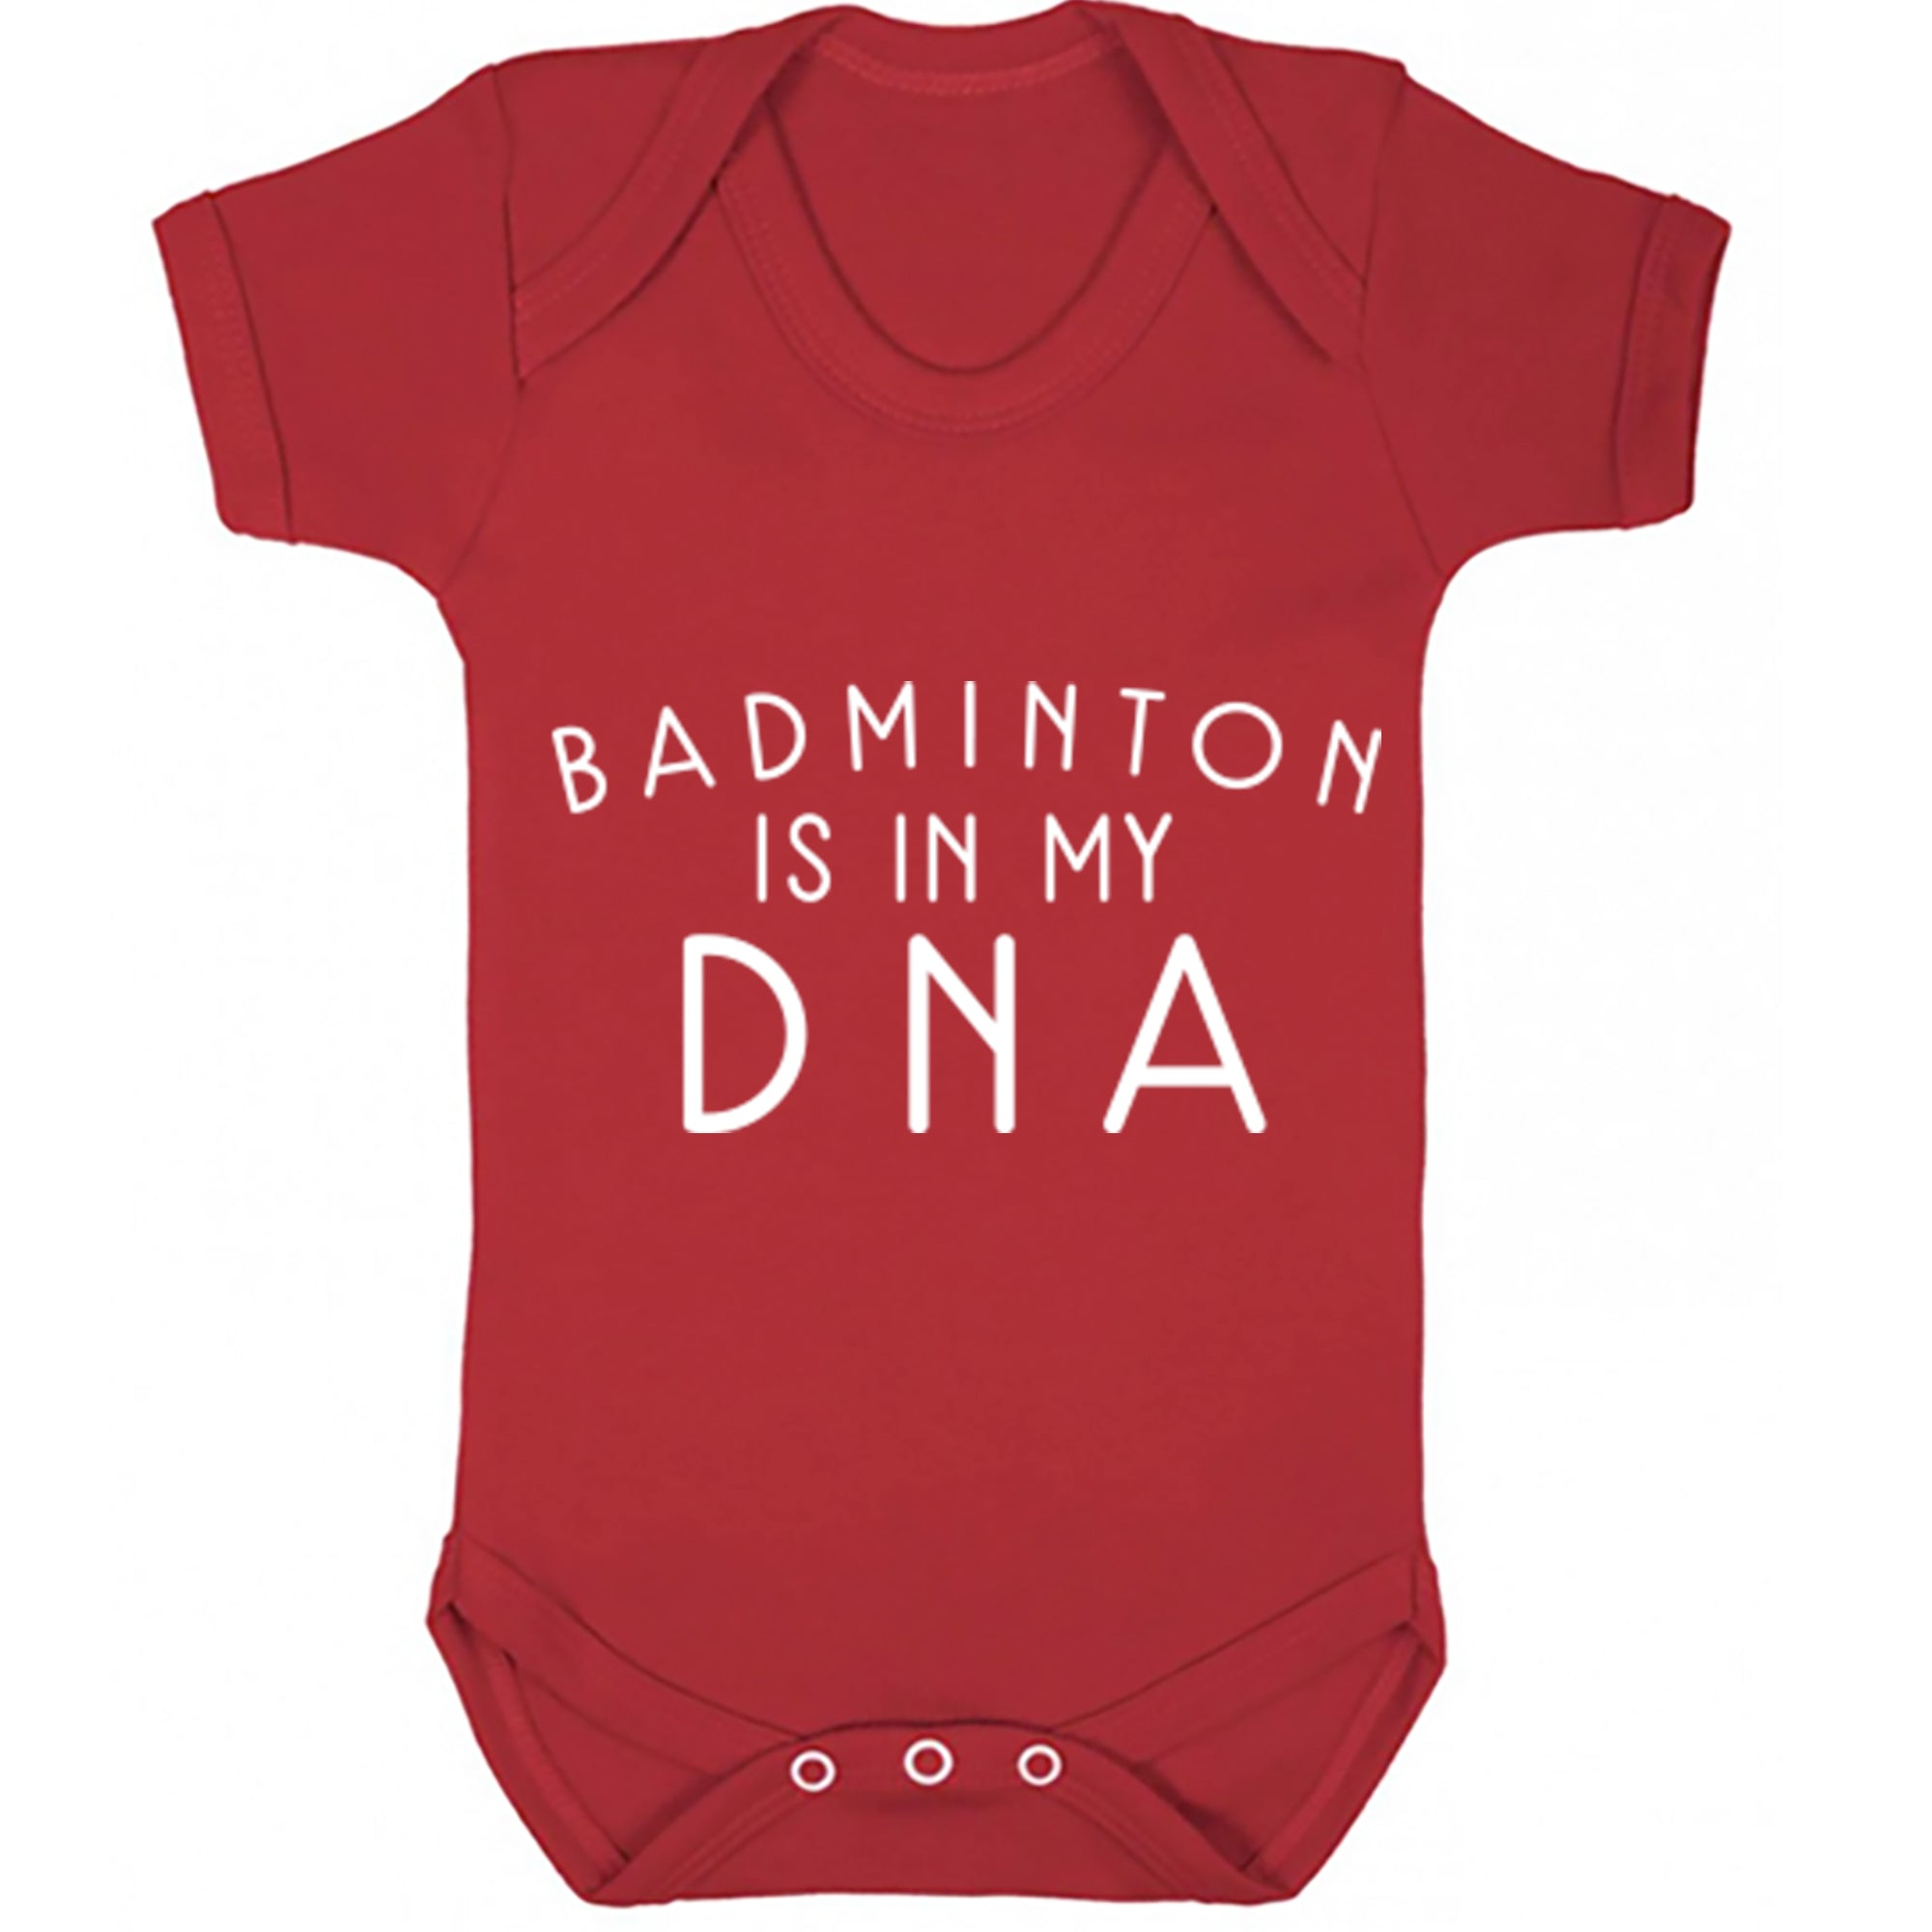 Badminton Is In My DNA Baby Vest S0691